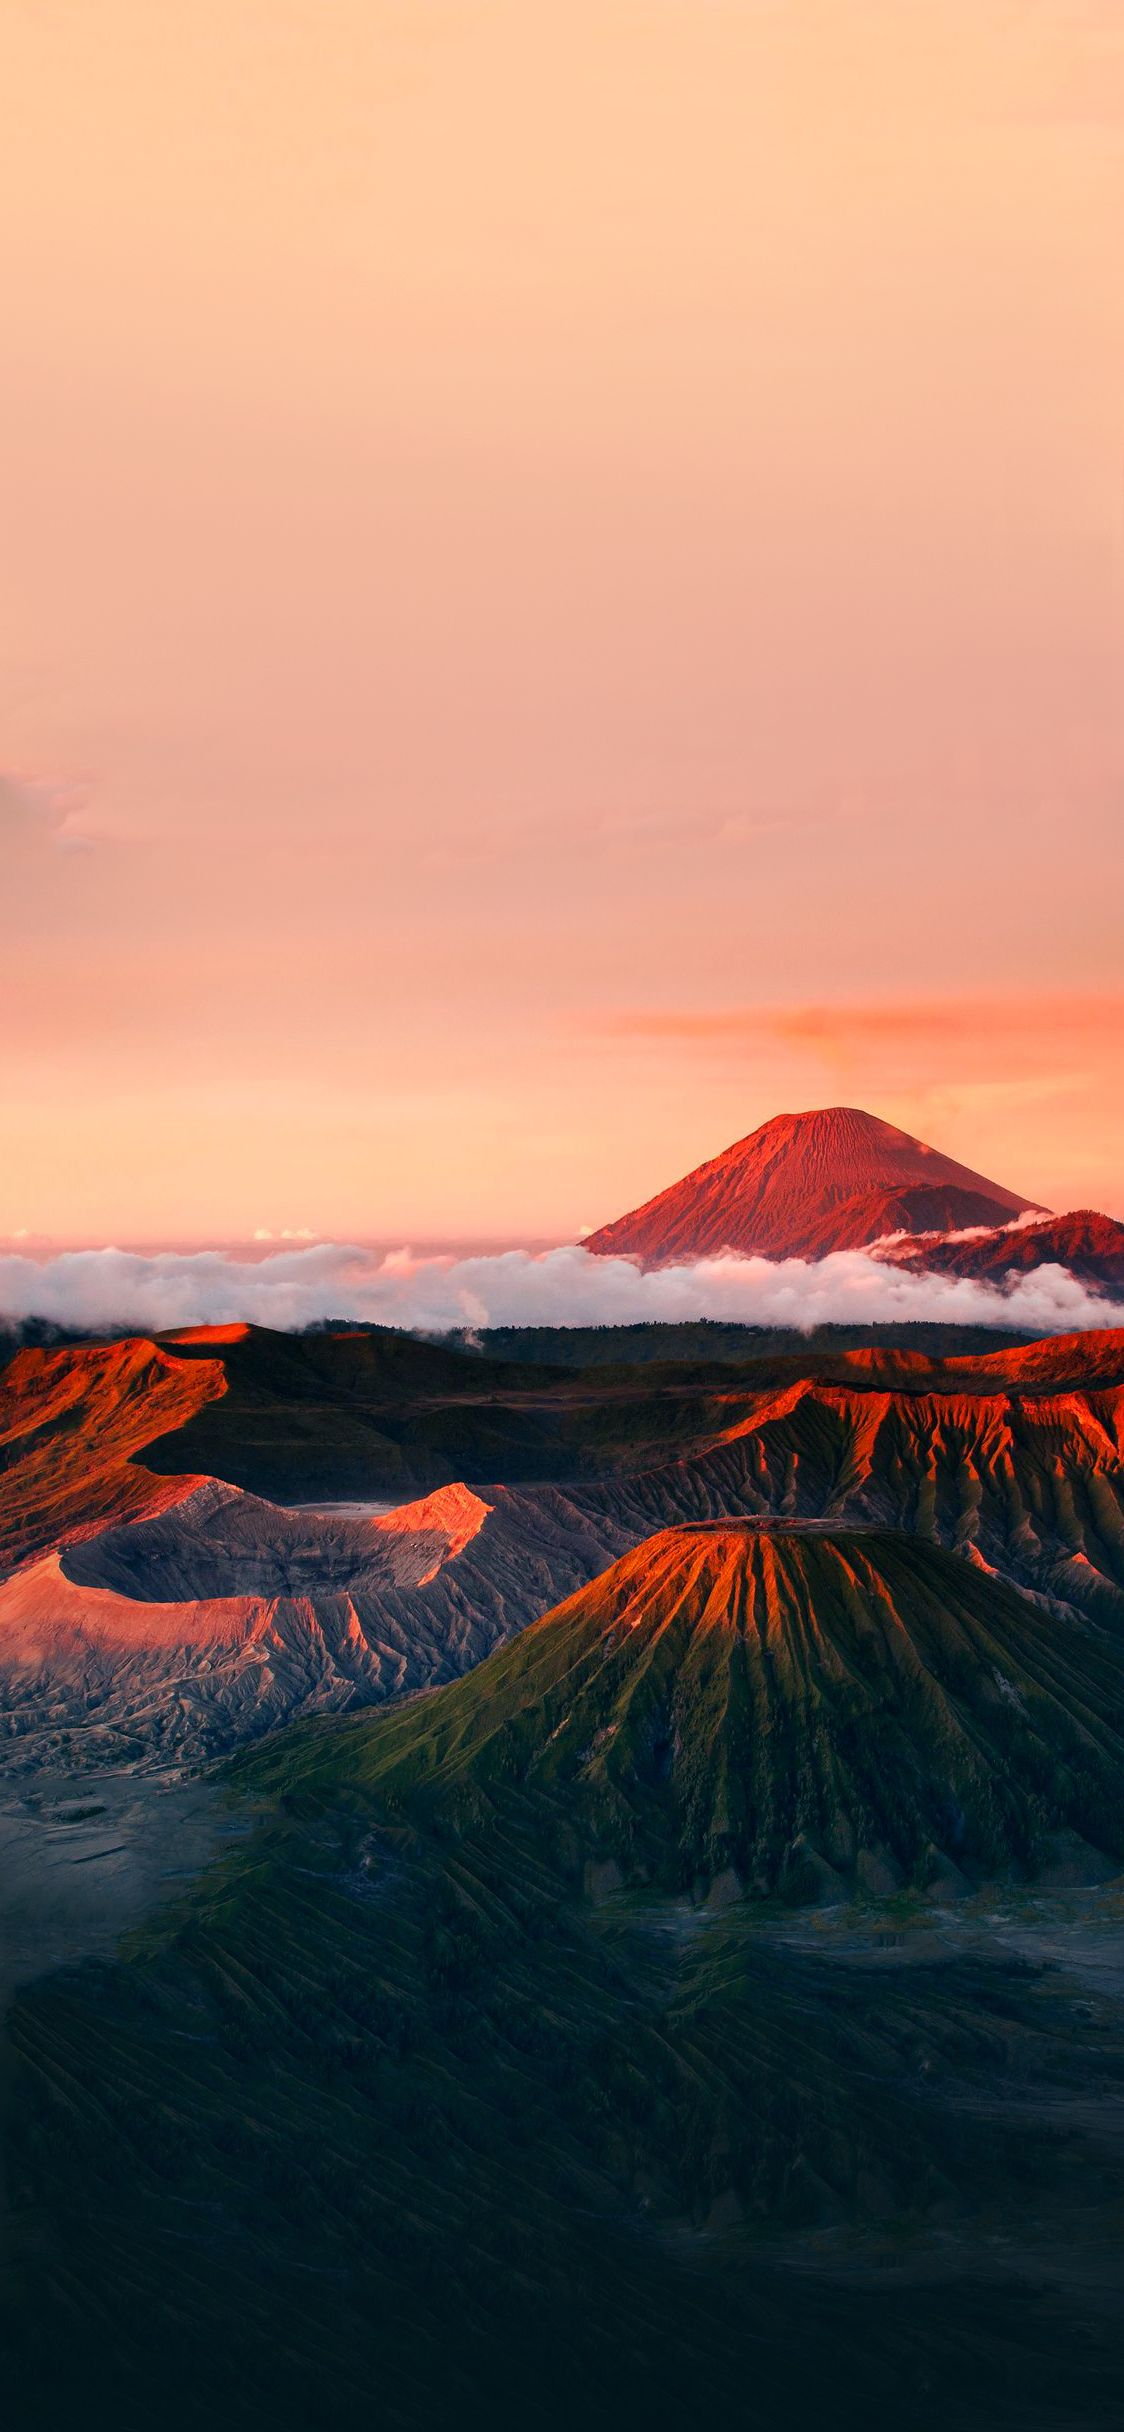 Best Volcano Wallpaper For Iphone X Ioswall Volcano Wallpaper Nature Wallpaper Iphone Wallpaper